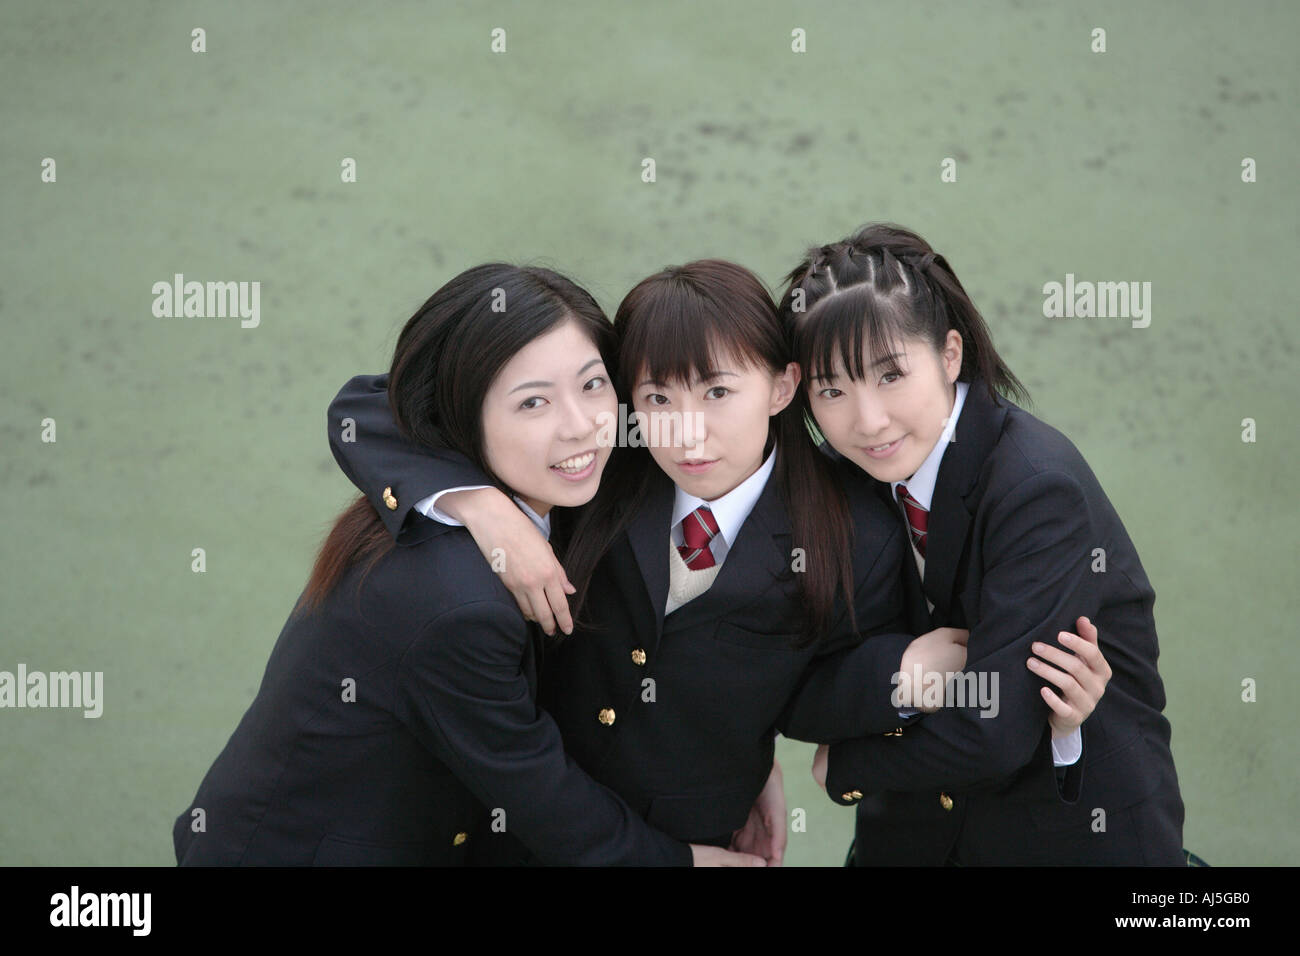 Three high school girls with arms around each other smiling Stock Photo